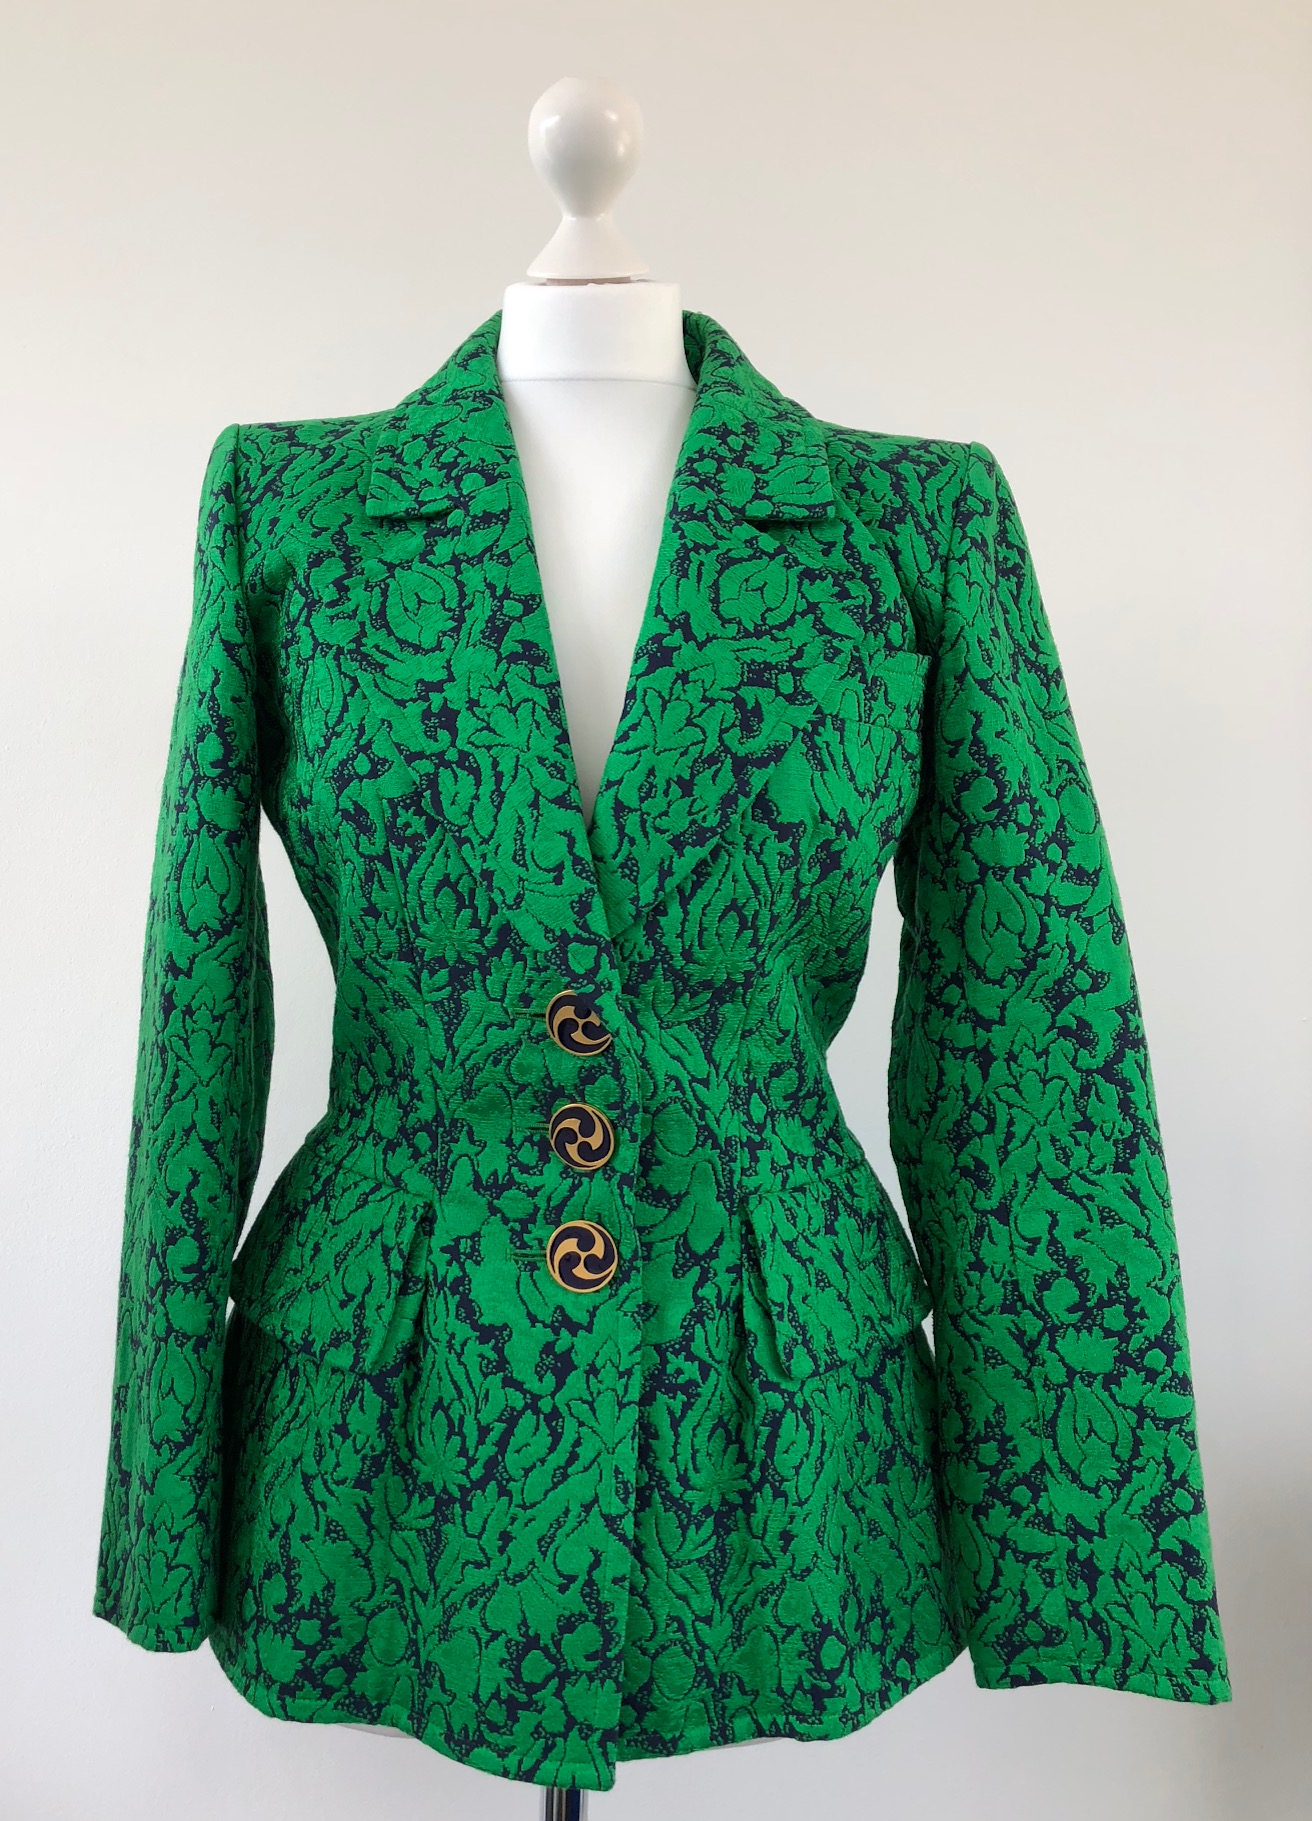 b2b54f4089e YSL Brocade Cashmere Print Fitted Jacket 1992-1993 Collection